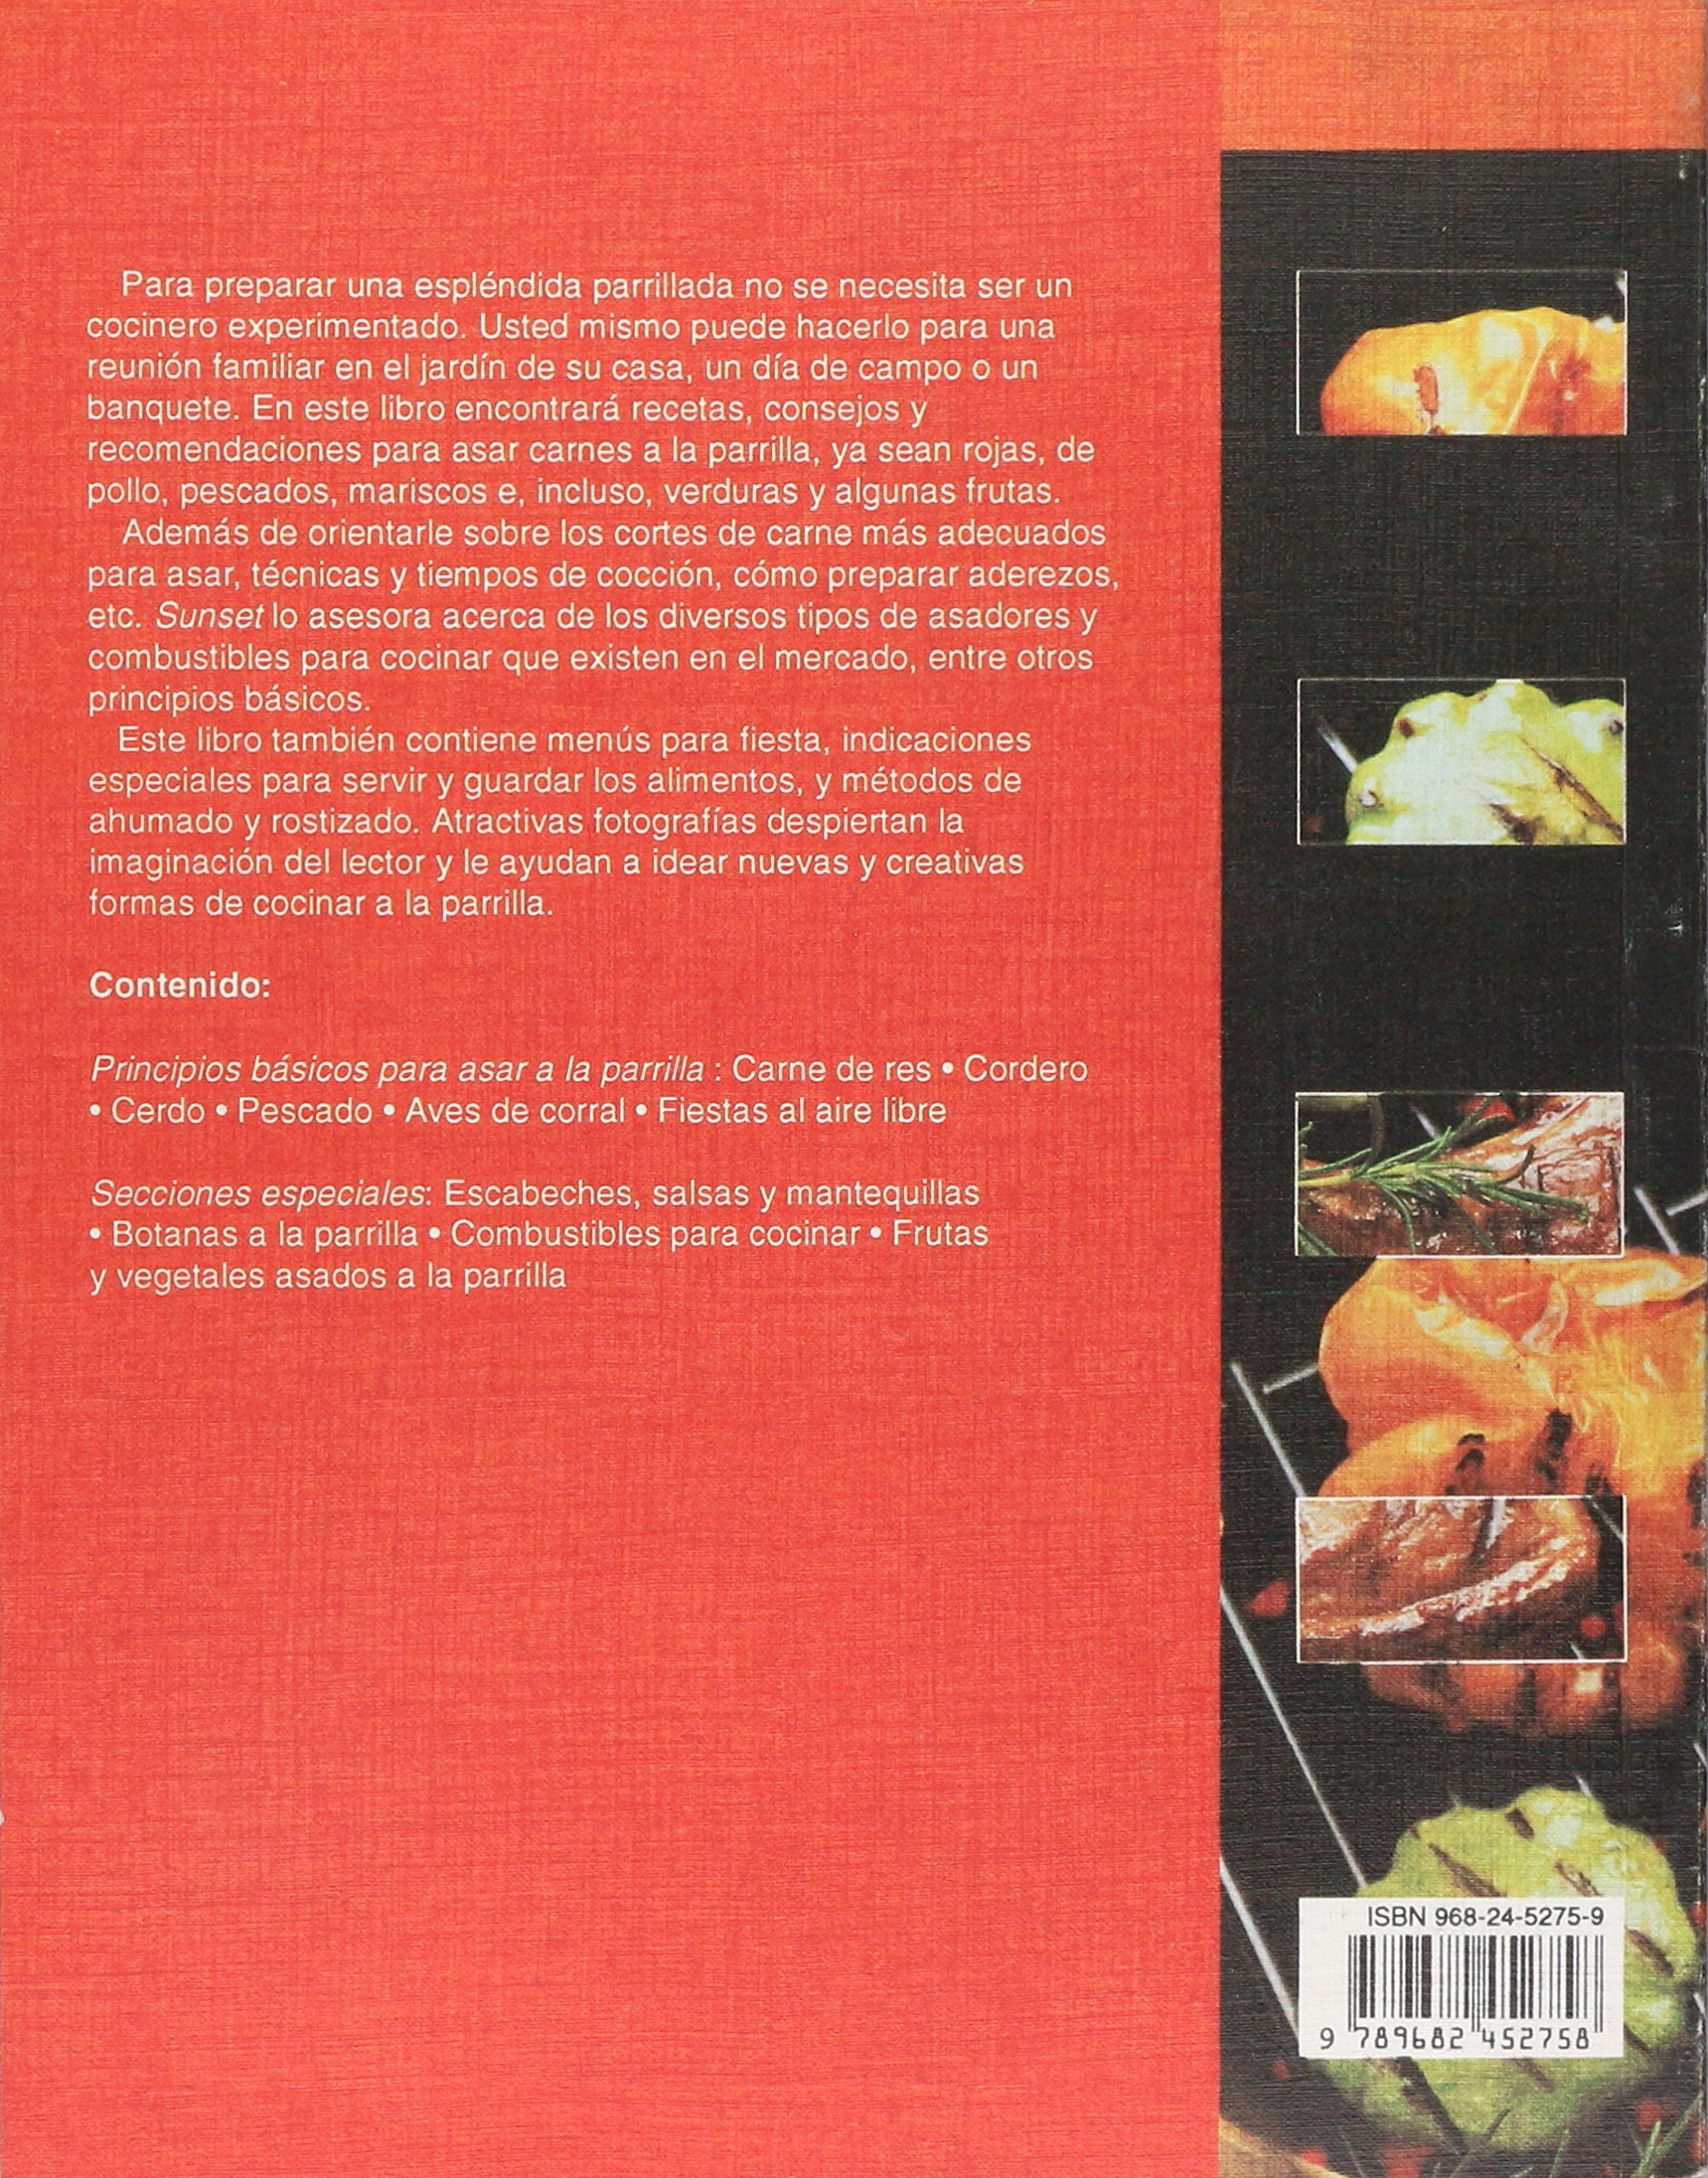 COMO ASAR A LA PARRILLA: TRILLAS SUNSET: 9789682452758: Amazon.com: Books